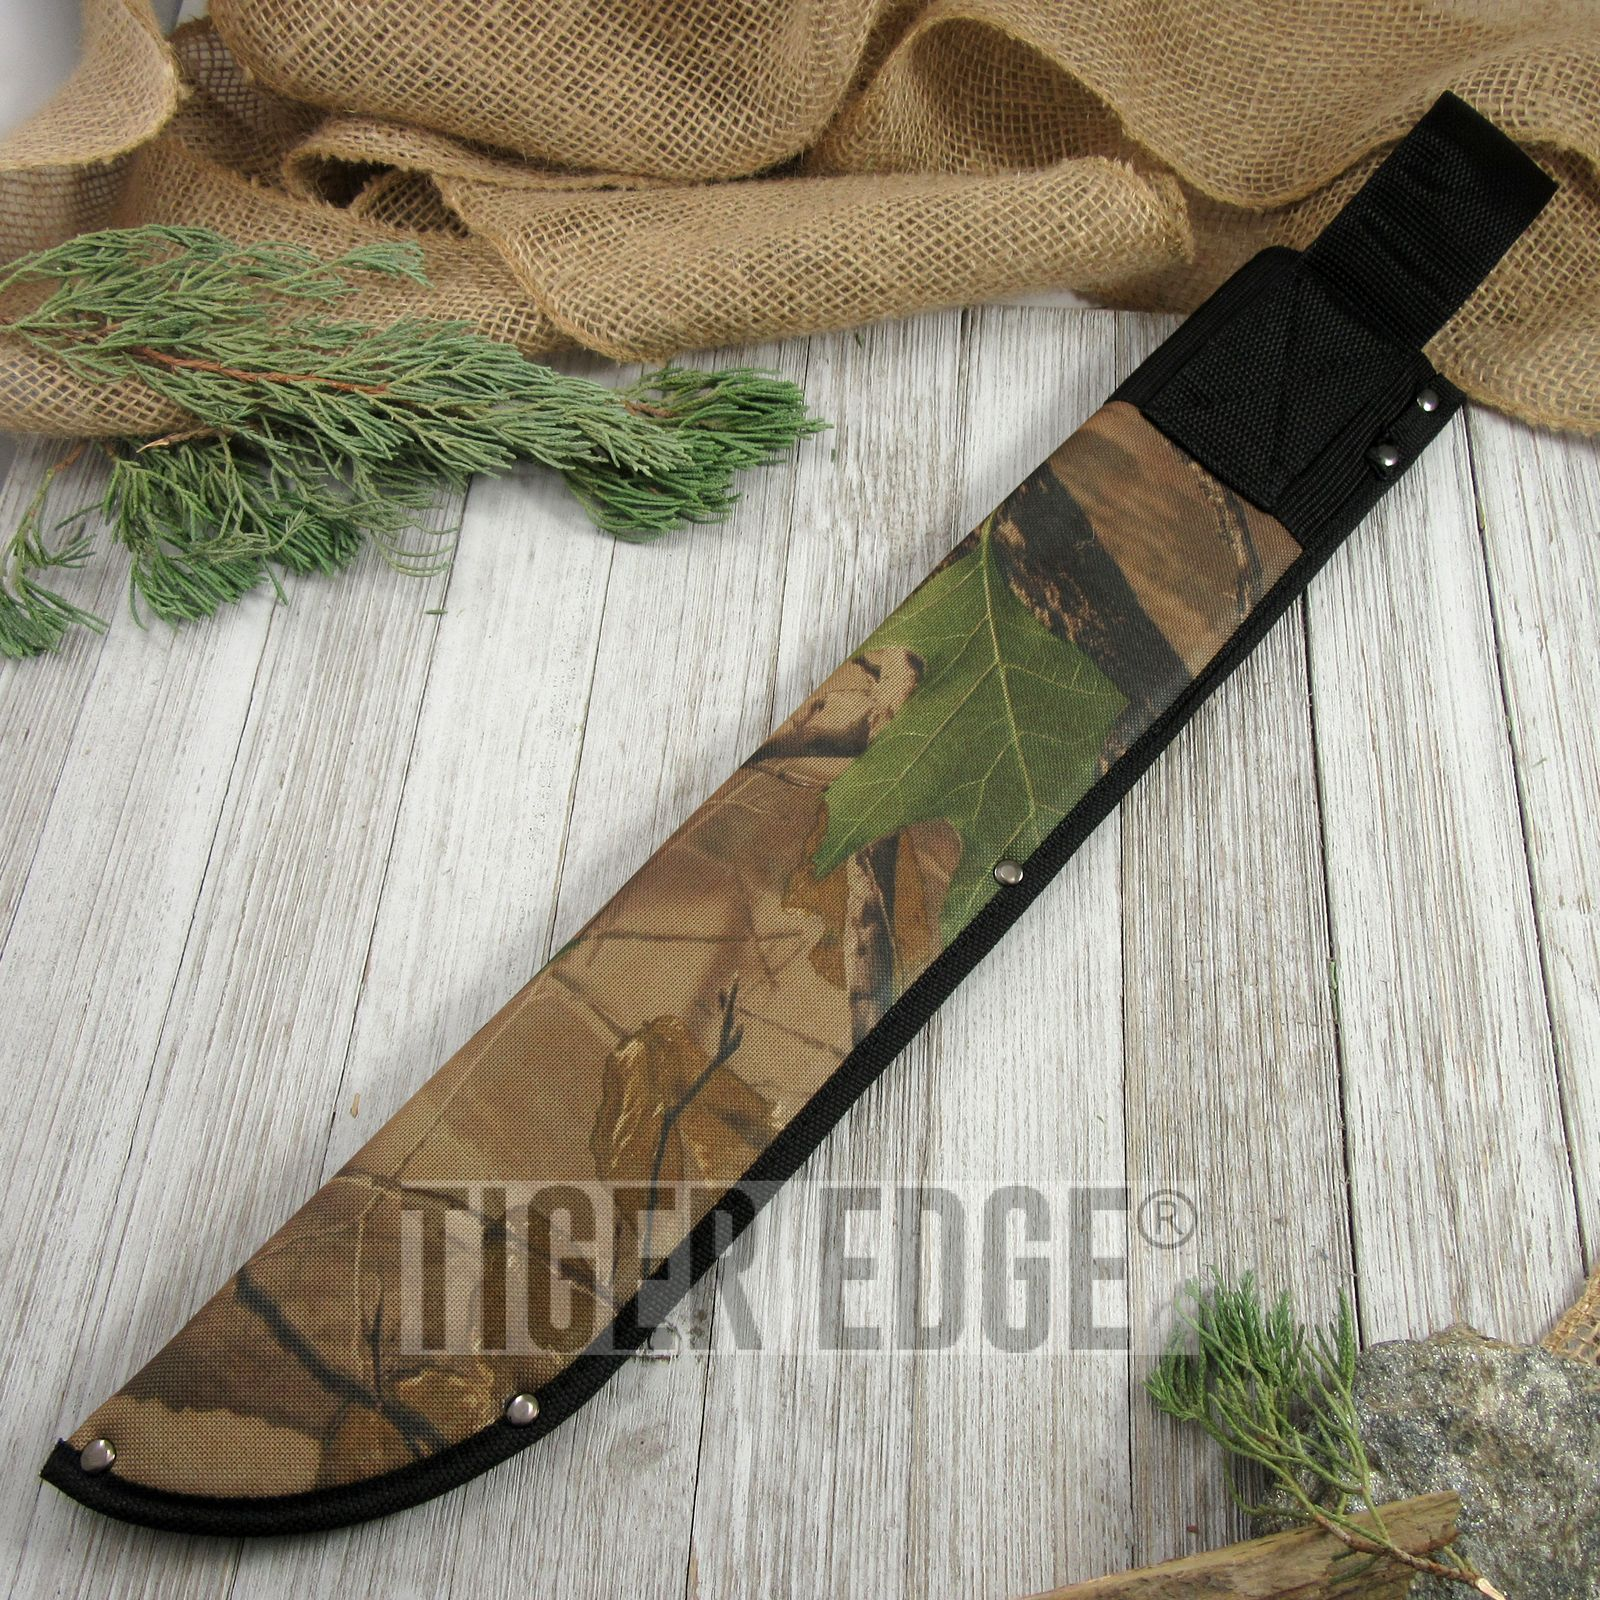 Fixed-Blade Knife Sheath | Camo Machete Belt Carry Case Pouch - Up To 18